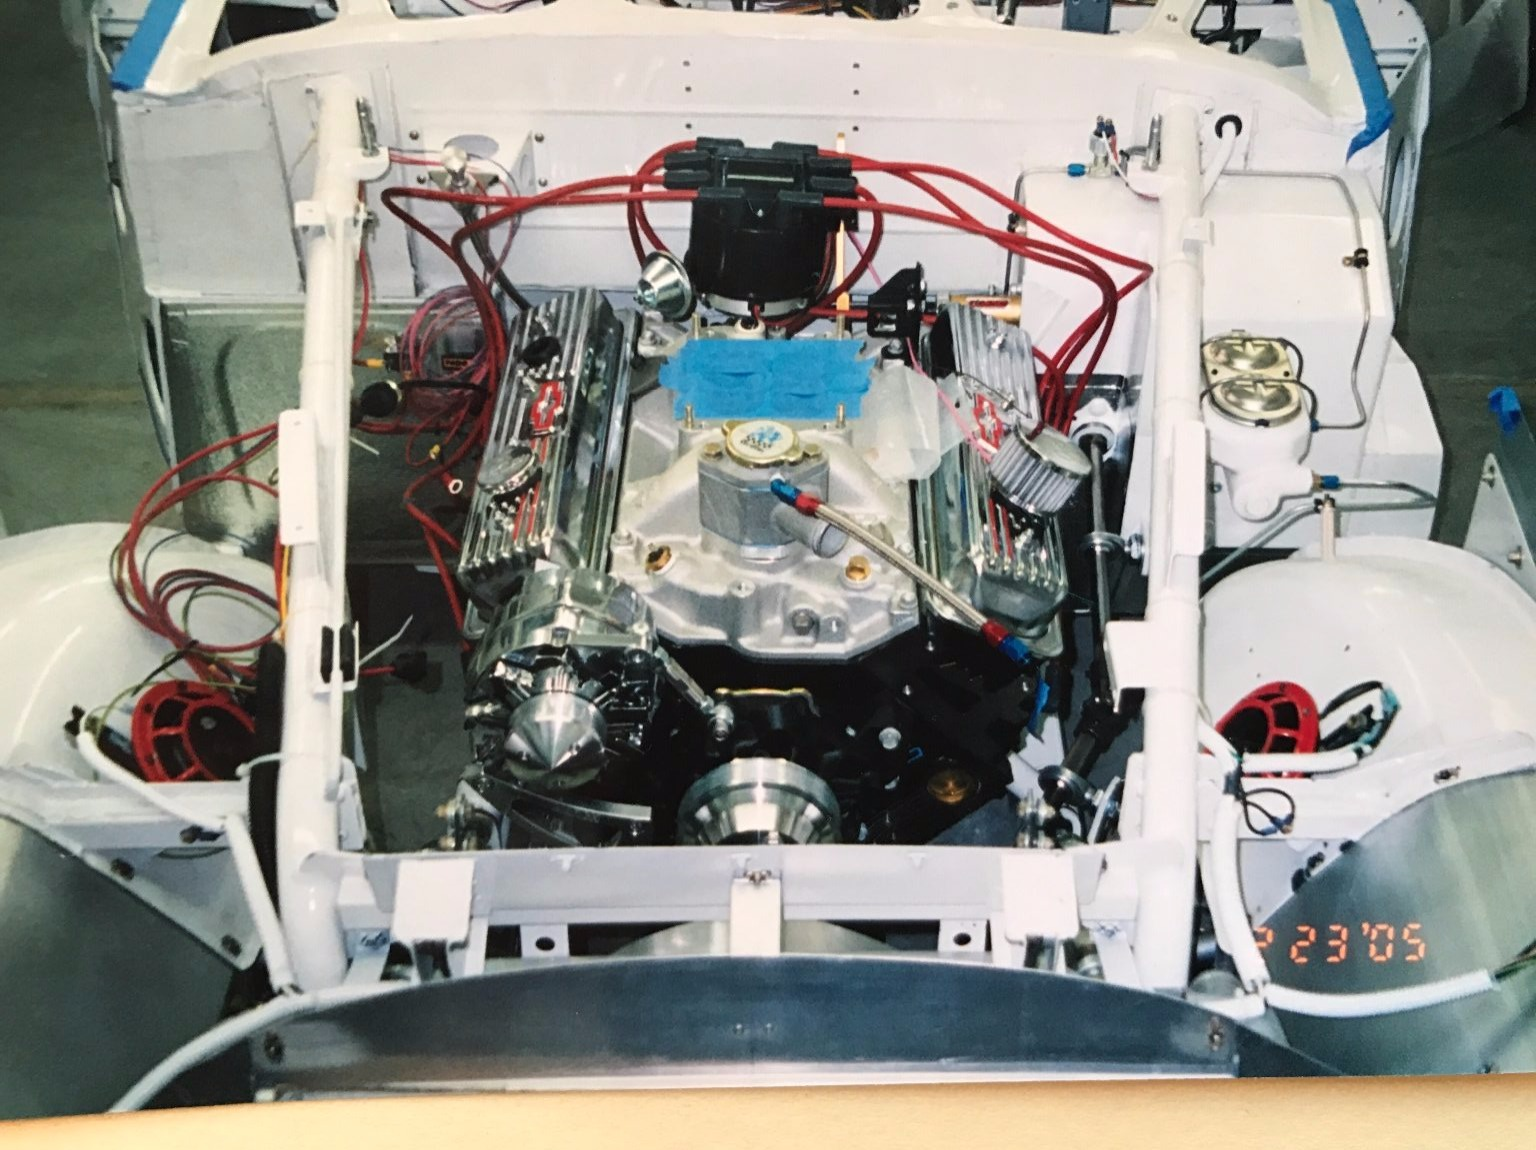 An Aero Space Engineer Cramed A Chevy Crate Engine Into A